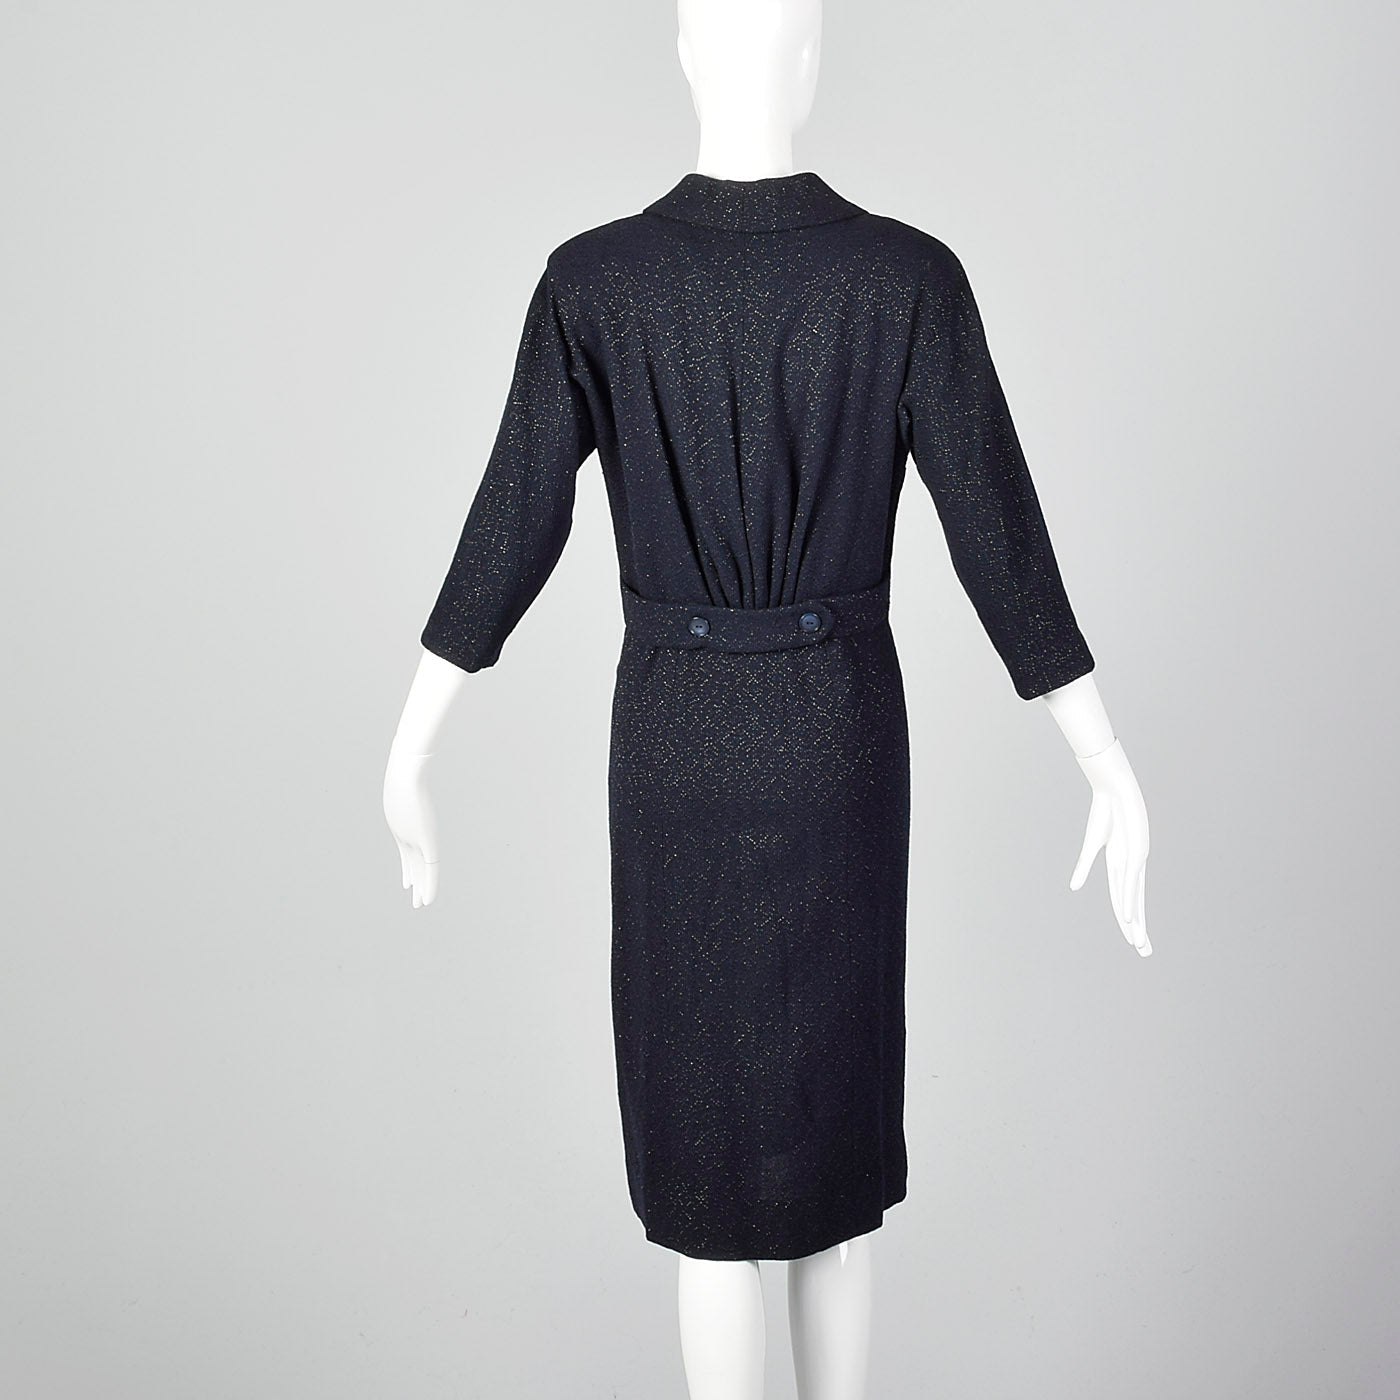 1950s Navy Blue Dress with Silver Glitter Textile